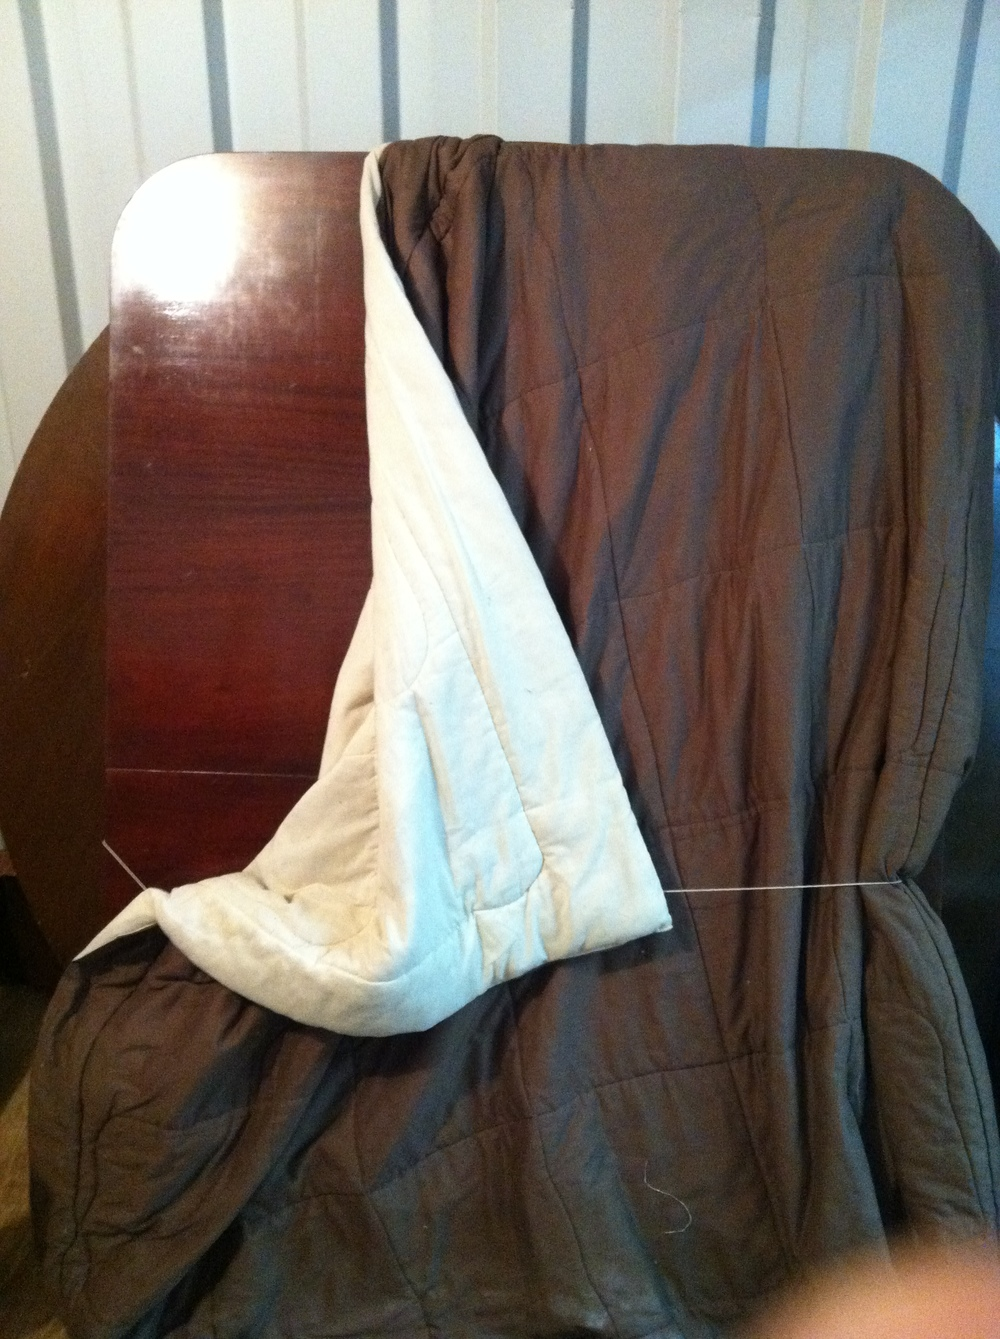 0457: Rectangular Wood Table Top (wrapped in blanket)